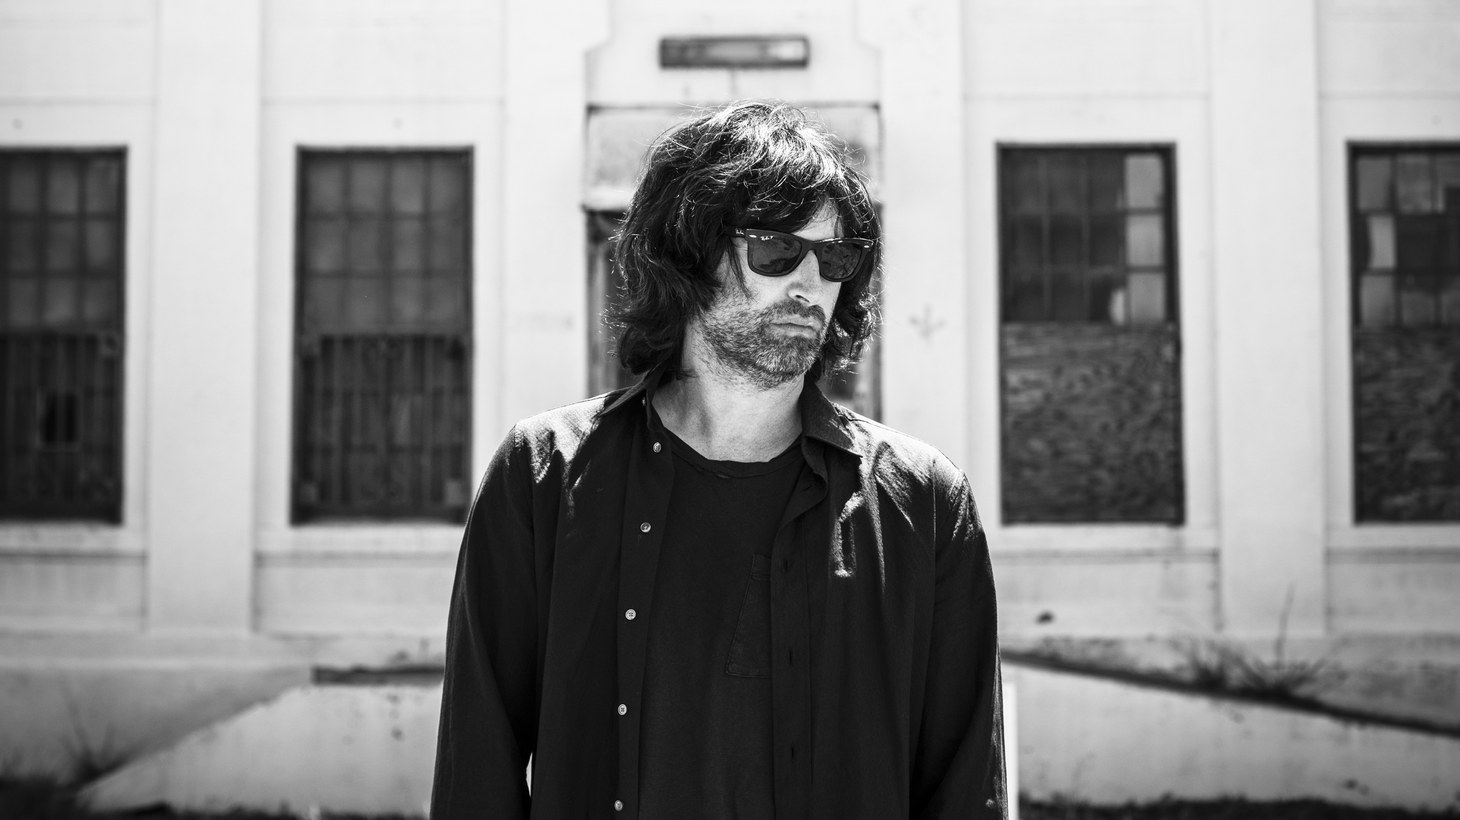 Pete Yorn has been on a solo acoustic tour for the last few years previewing new songs and playing deep cuts from his albums.